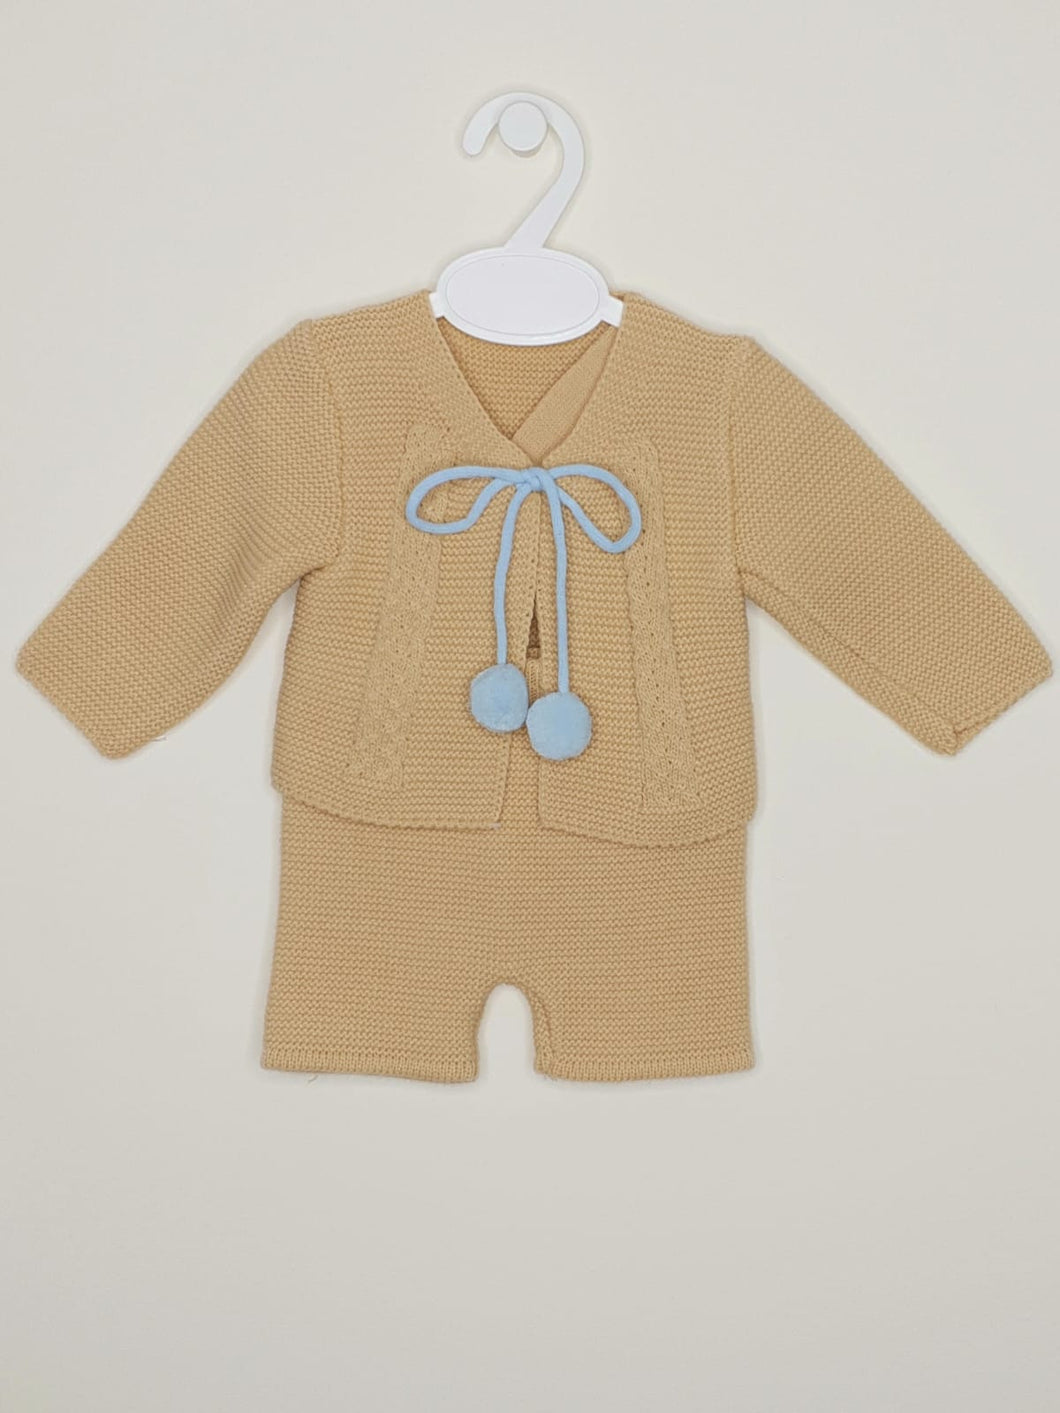 Portuguese Boys H-Bar Knitted Outfit